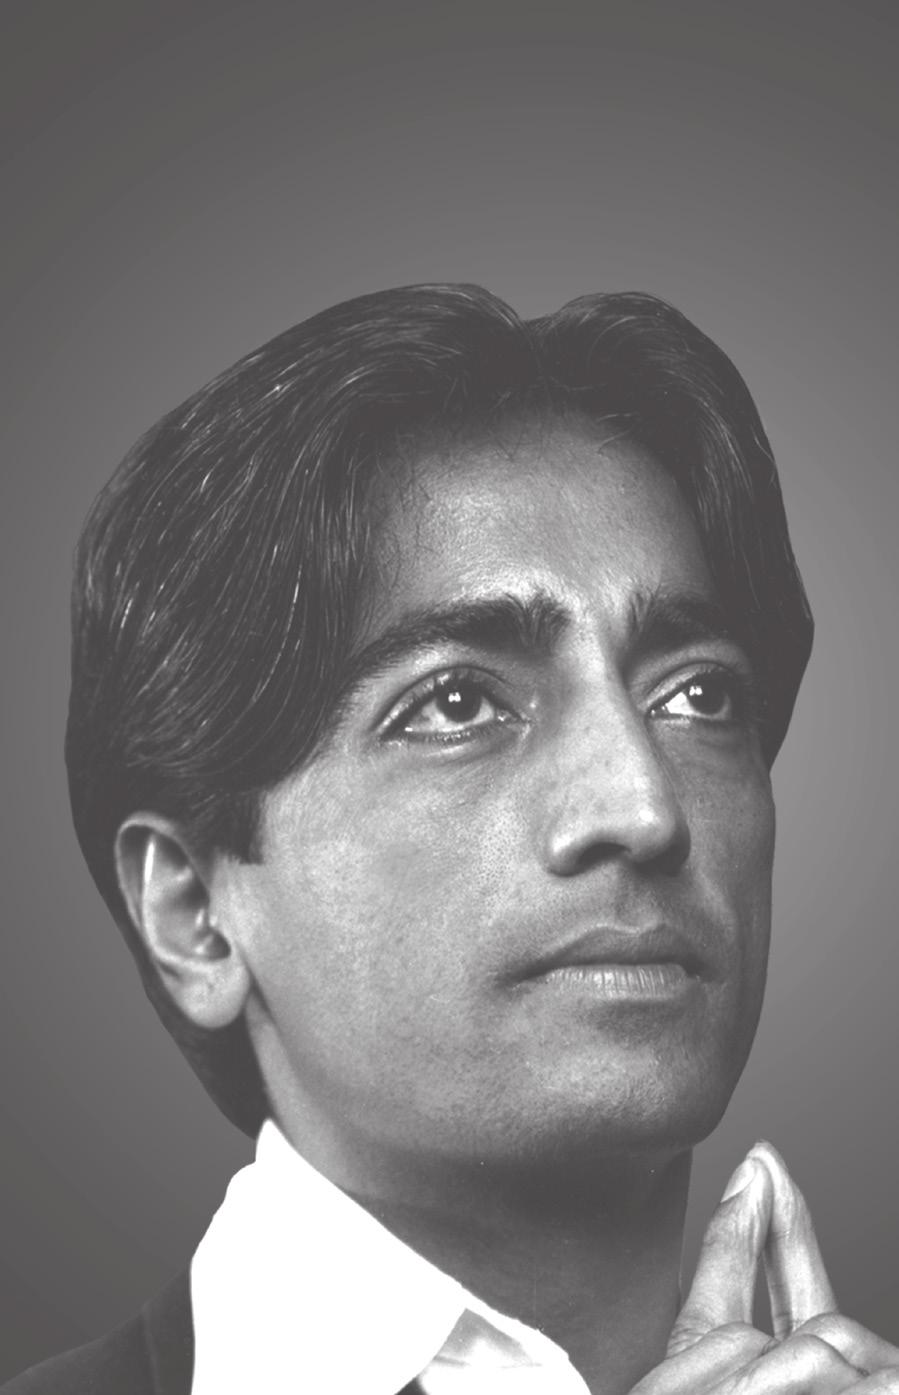 Krishnamurti s teachings This comprehensiverecord record J.